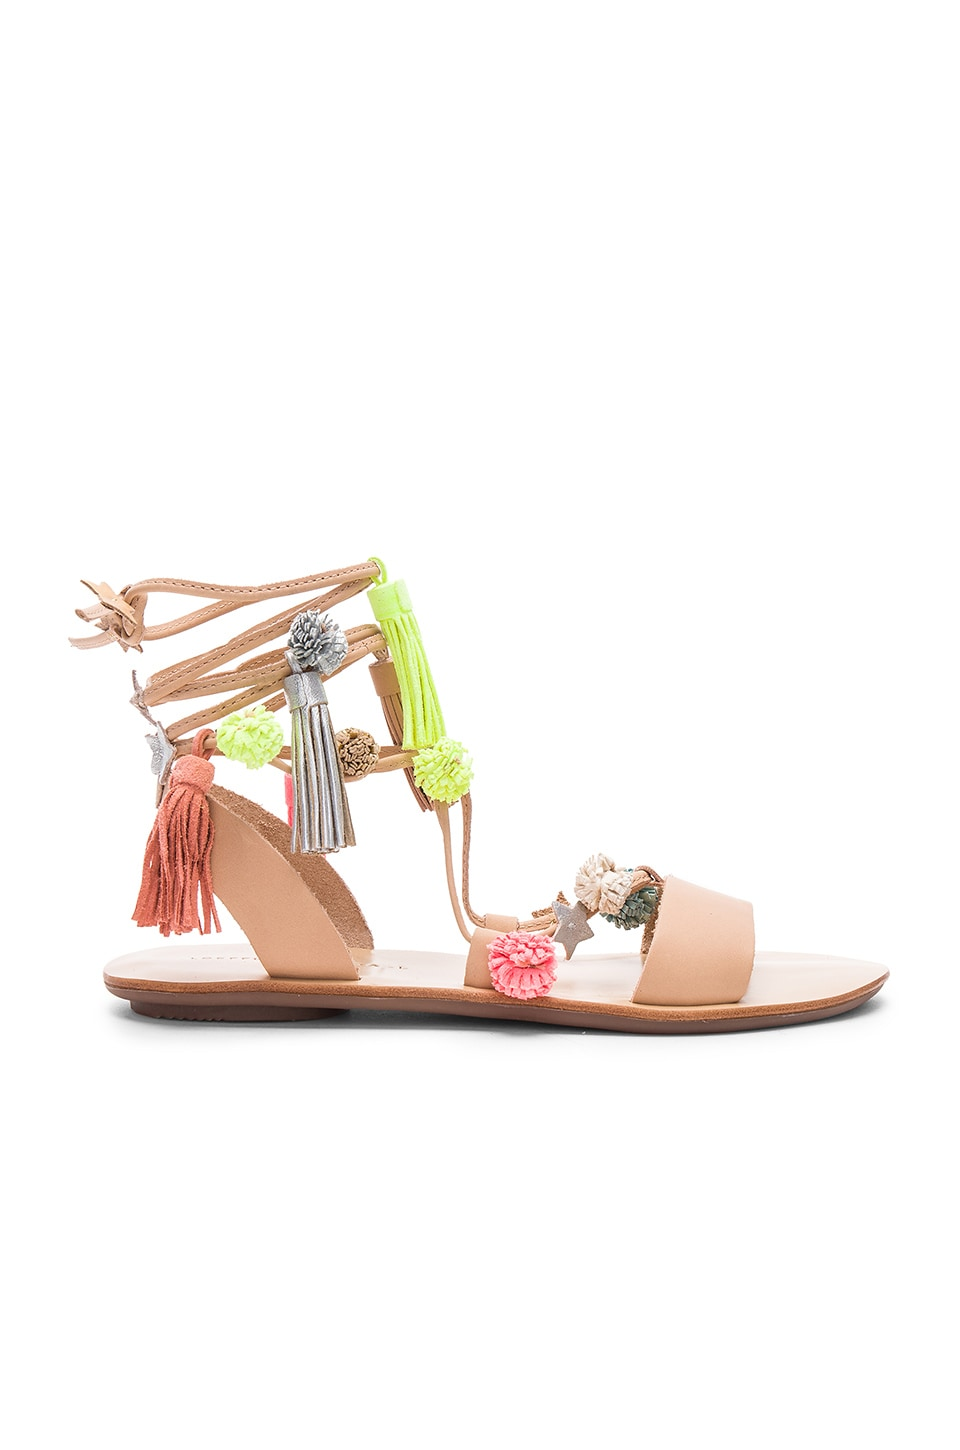 Loeffler Randall Suze Sandal in Wheat & Fluo Multi